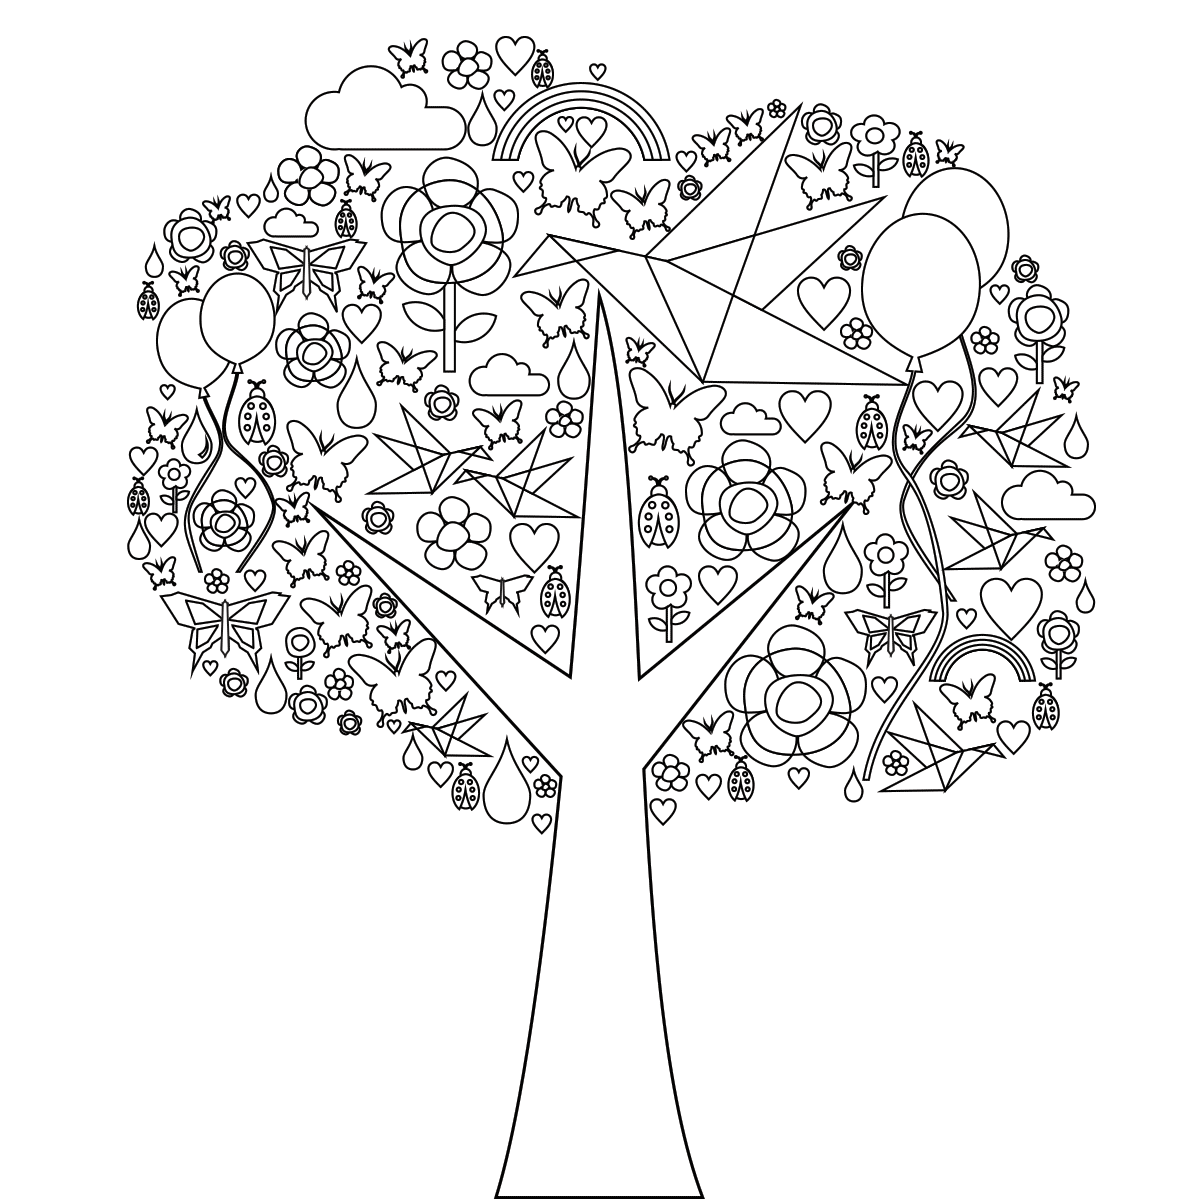 Tree of Life Coloring Page